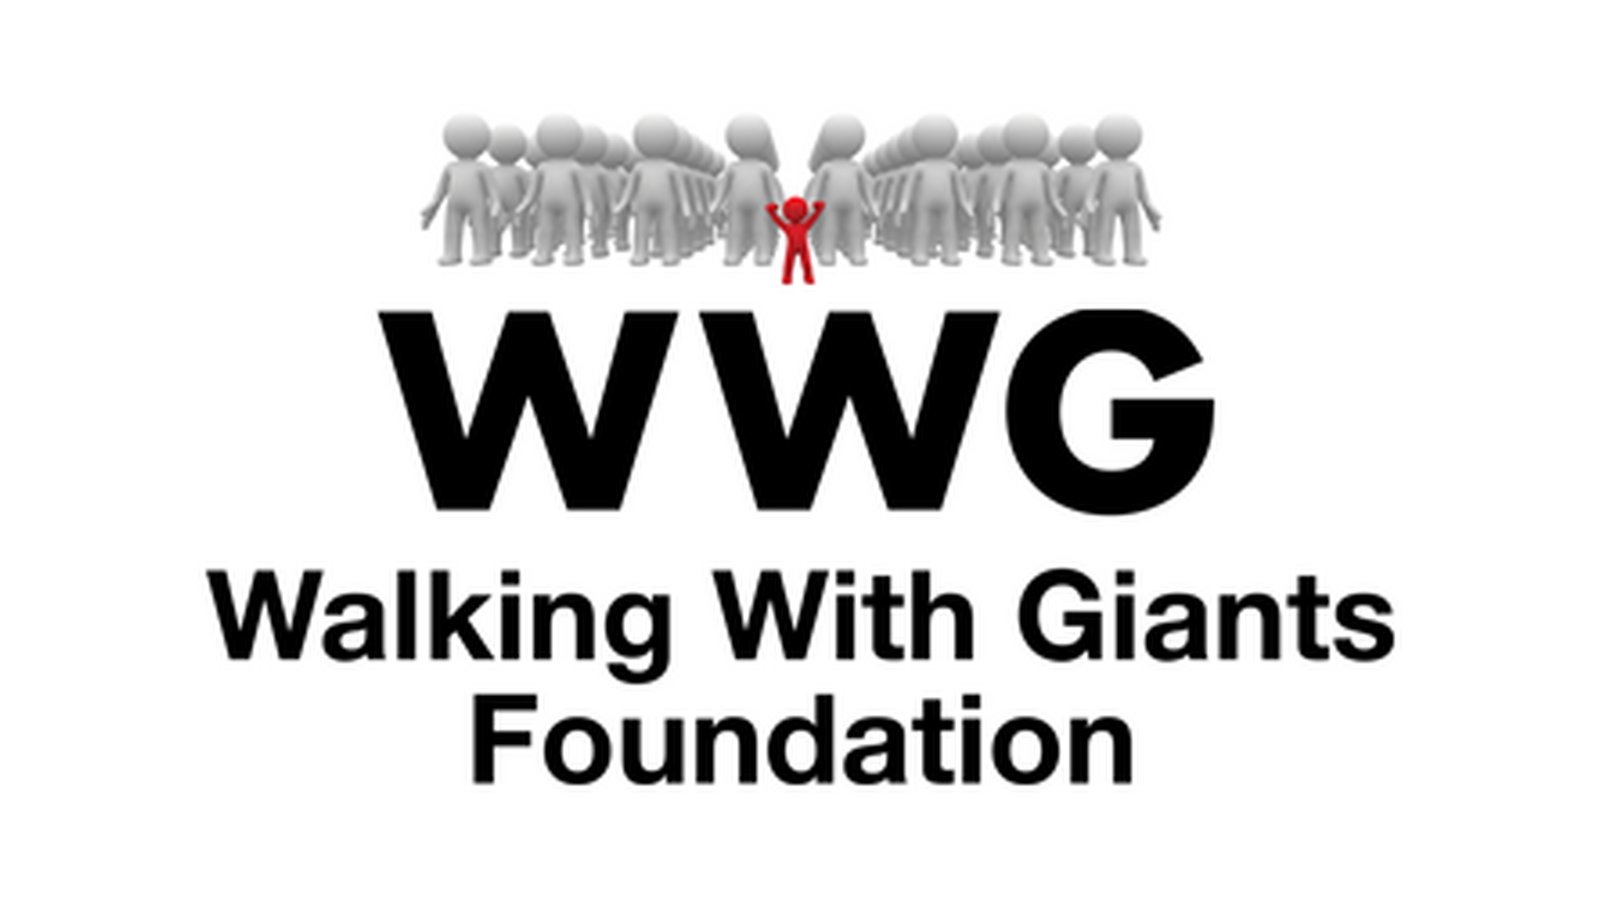 Walking With Giants Foundation